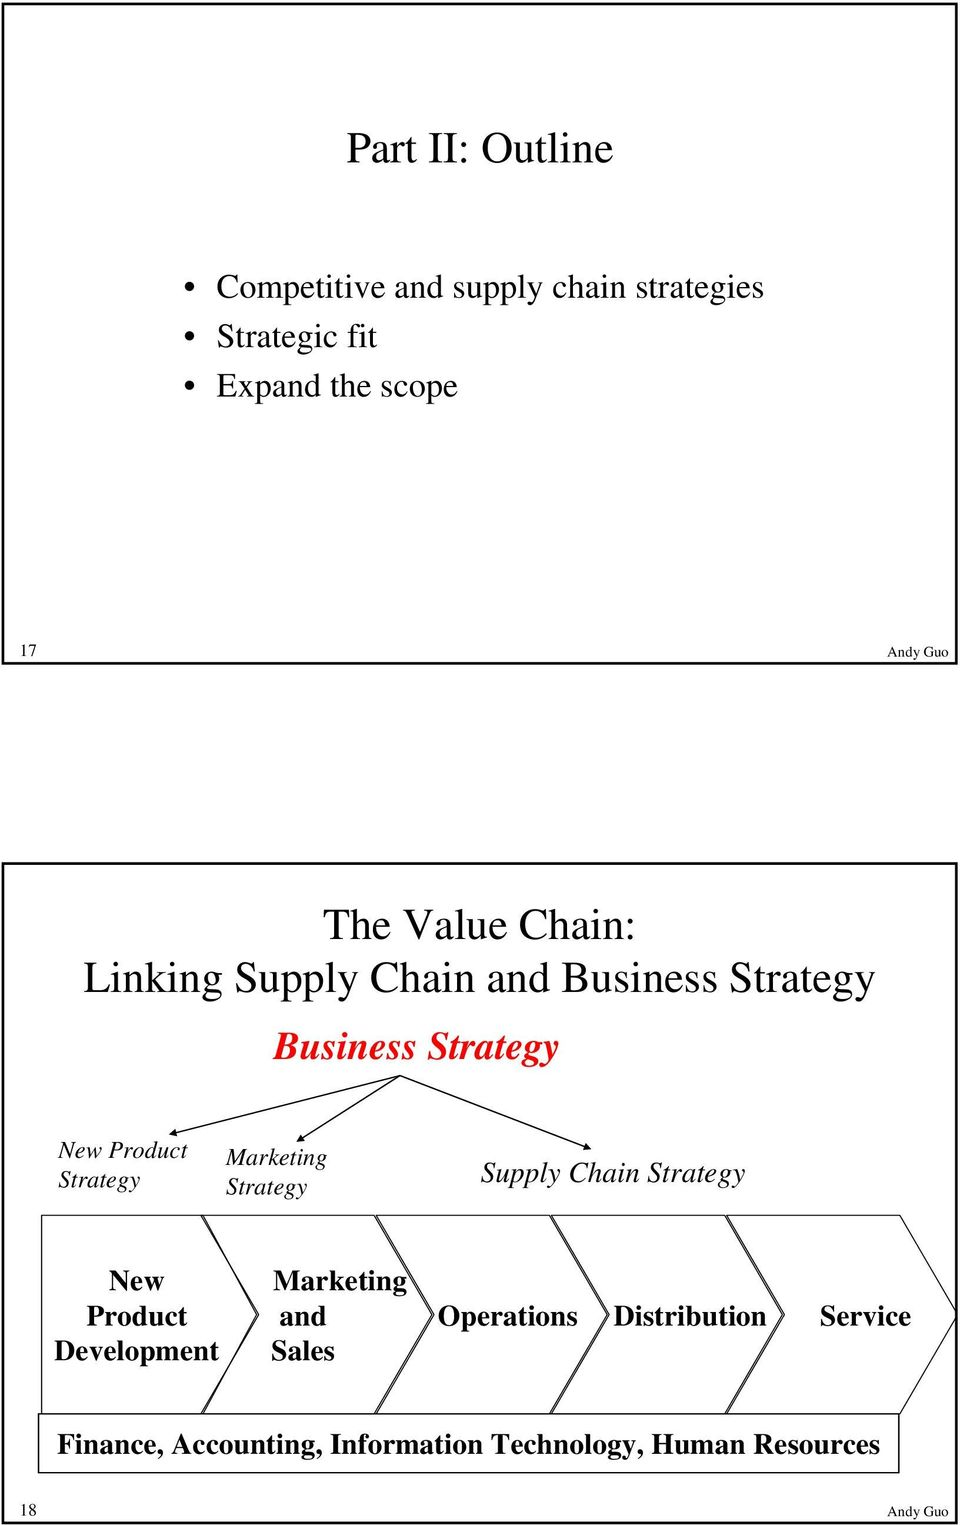 Strategy Marketing Strategy Supply Chain Strategy New Product Development Marketing and Sales